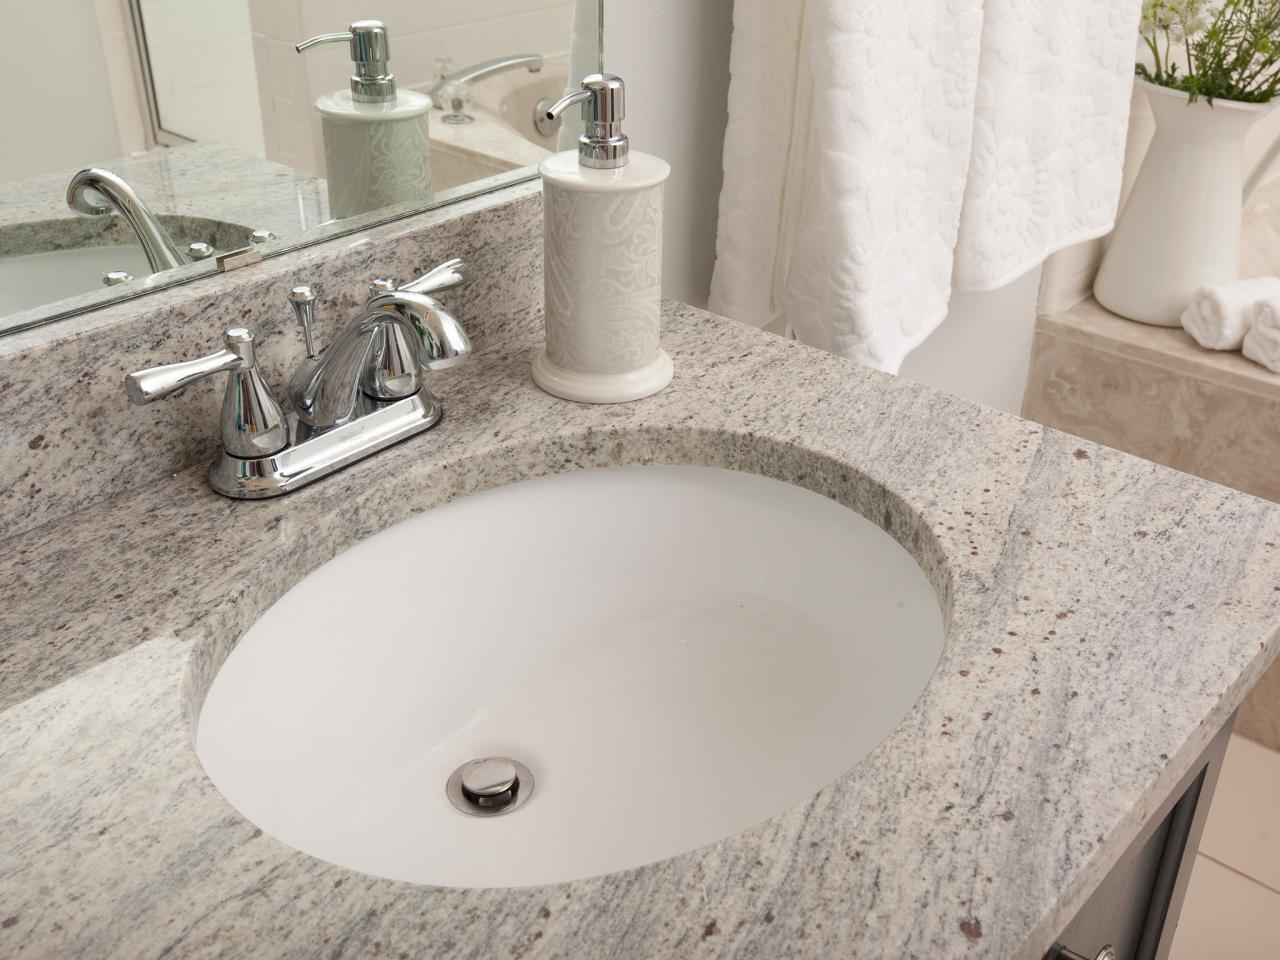 Undermount bathroom sinks hgtv for How much to install a bathroom vanity and sink